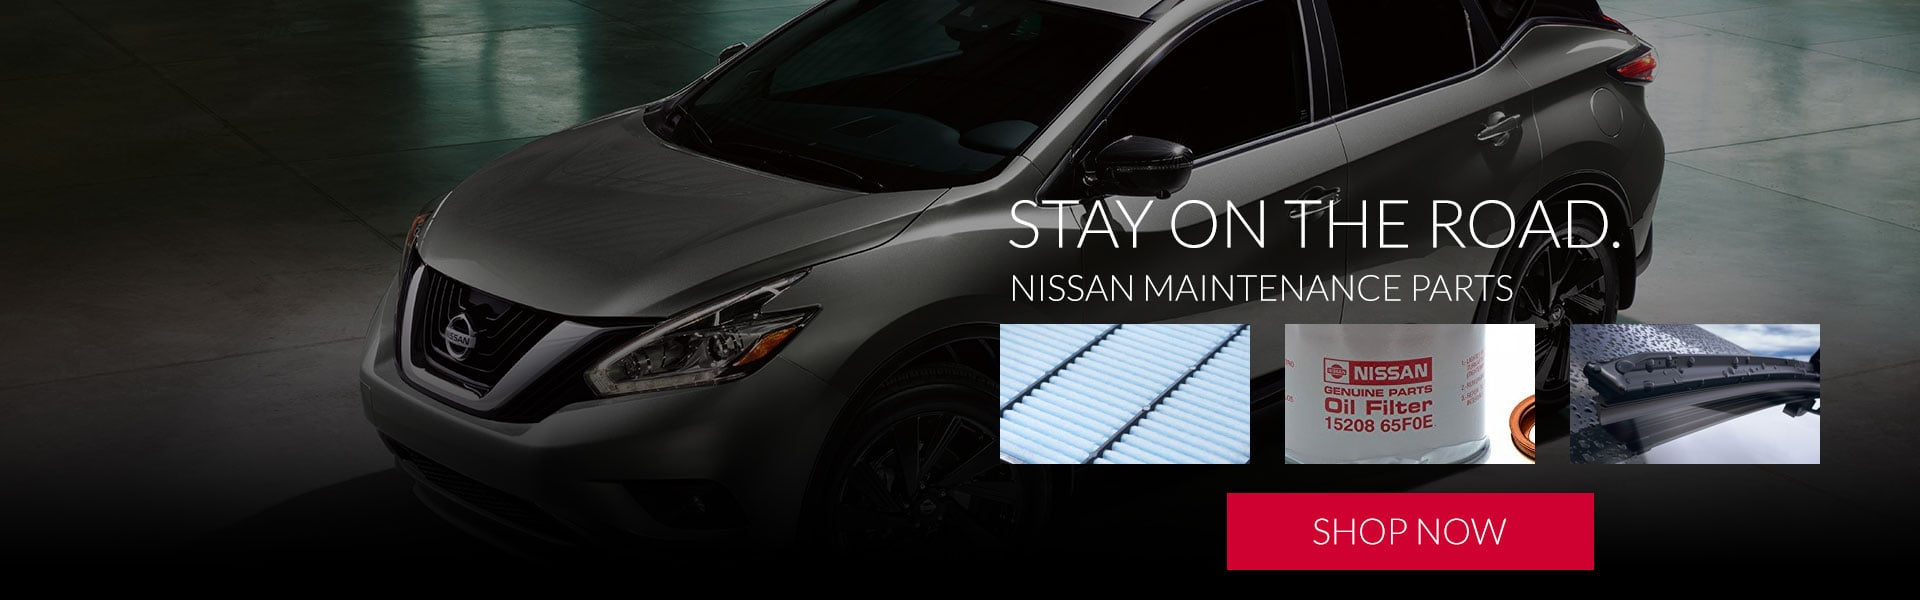 Nissan Maintenance Parts